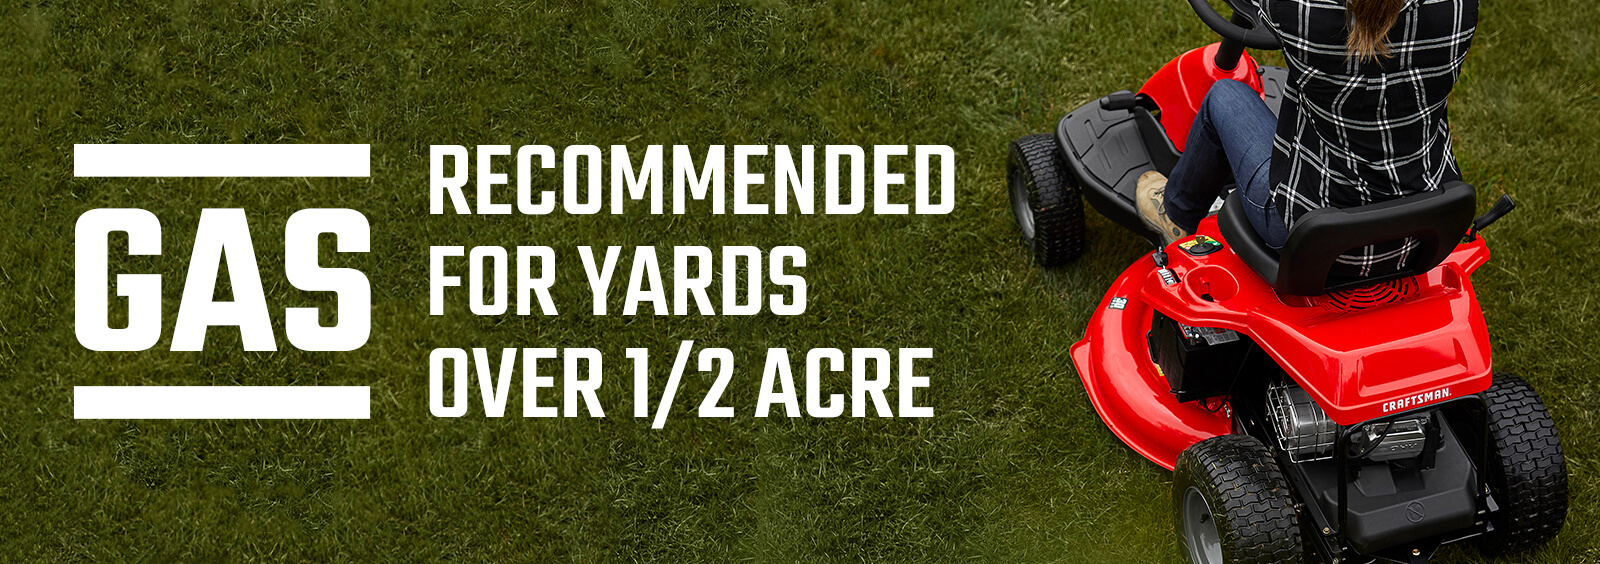 Gas: Recommended for yards over 1 acre